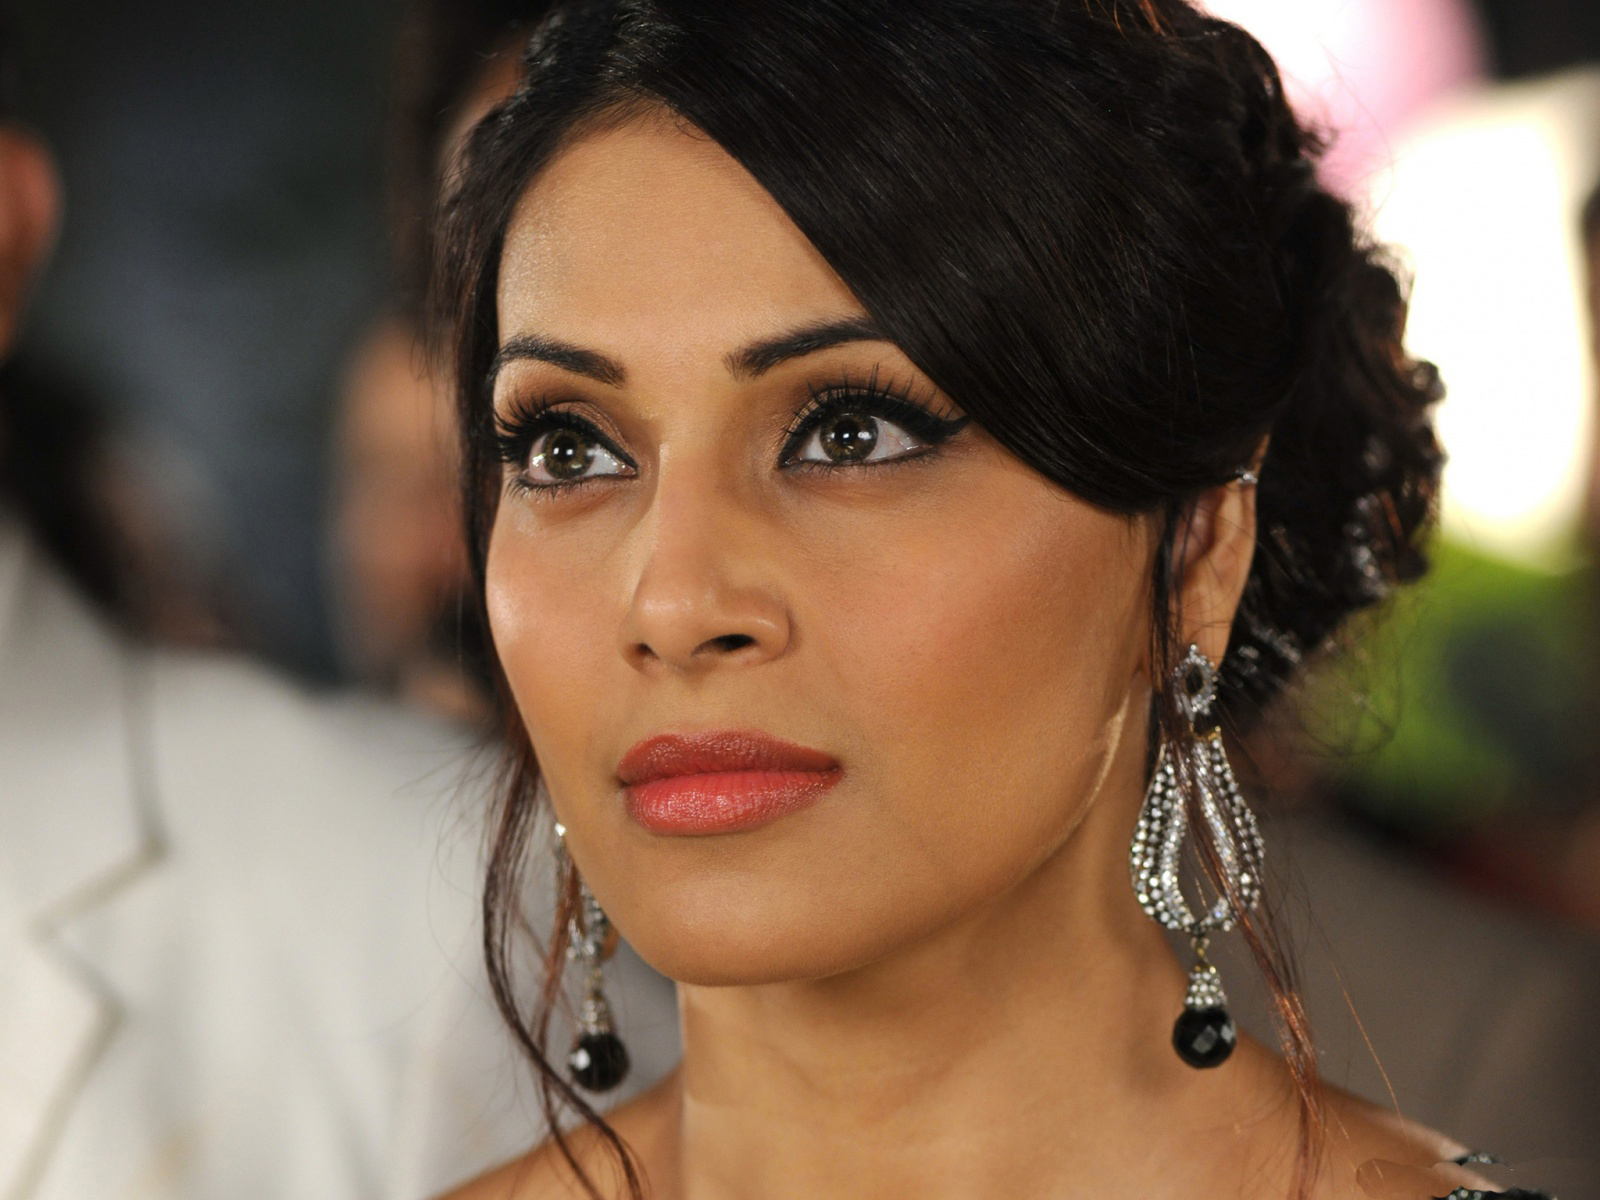 Stunning Bipasha Basu Face Look Desktop Photos Free Hd Mobile